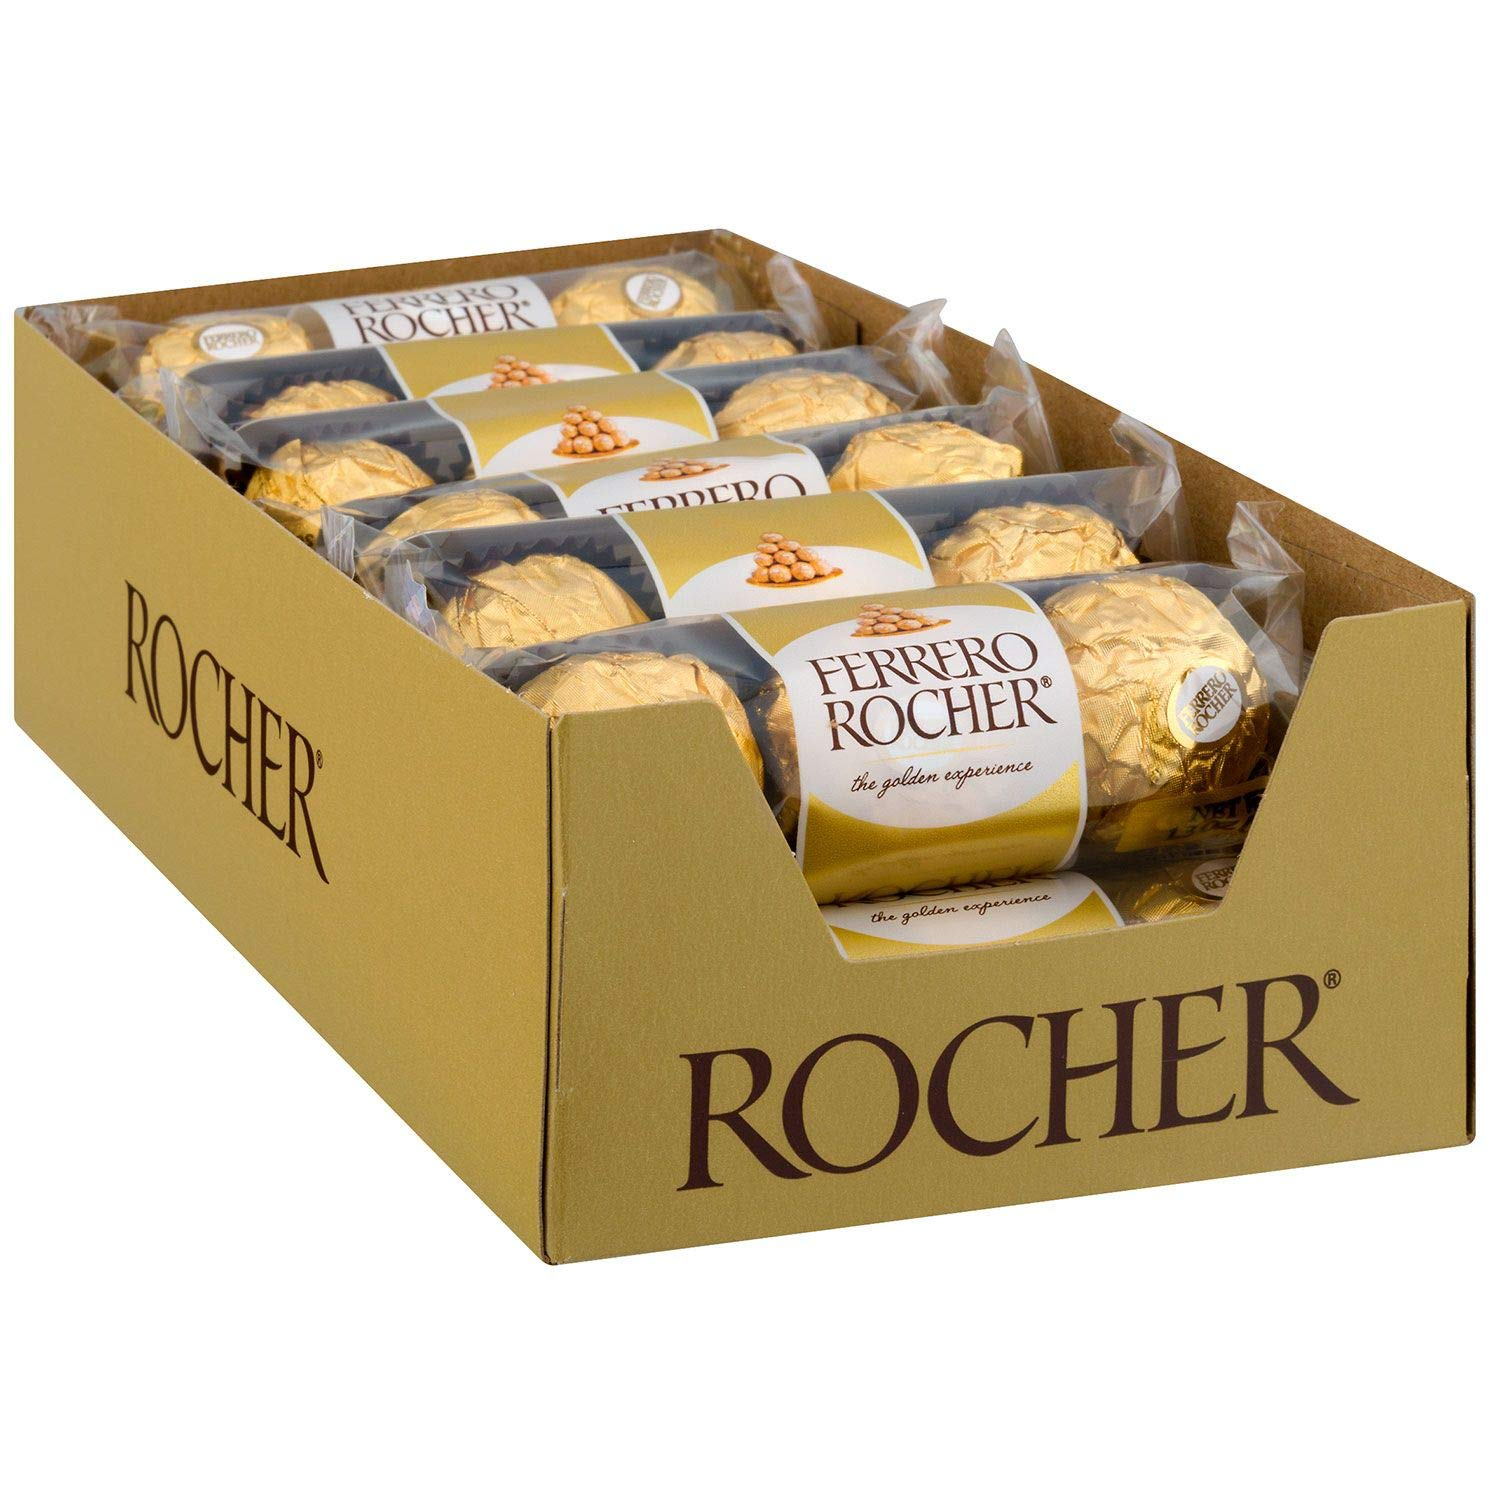 CDM product Ferrero Rocher Milk Chocolate 3 Pack, Case of 12 small thumbnail image